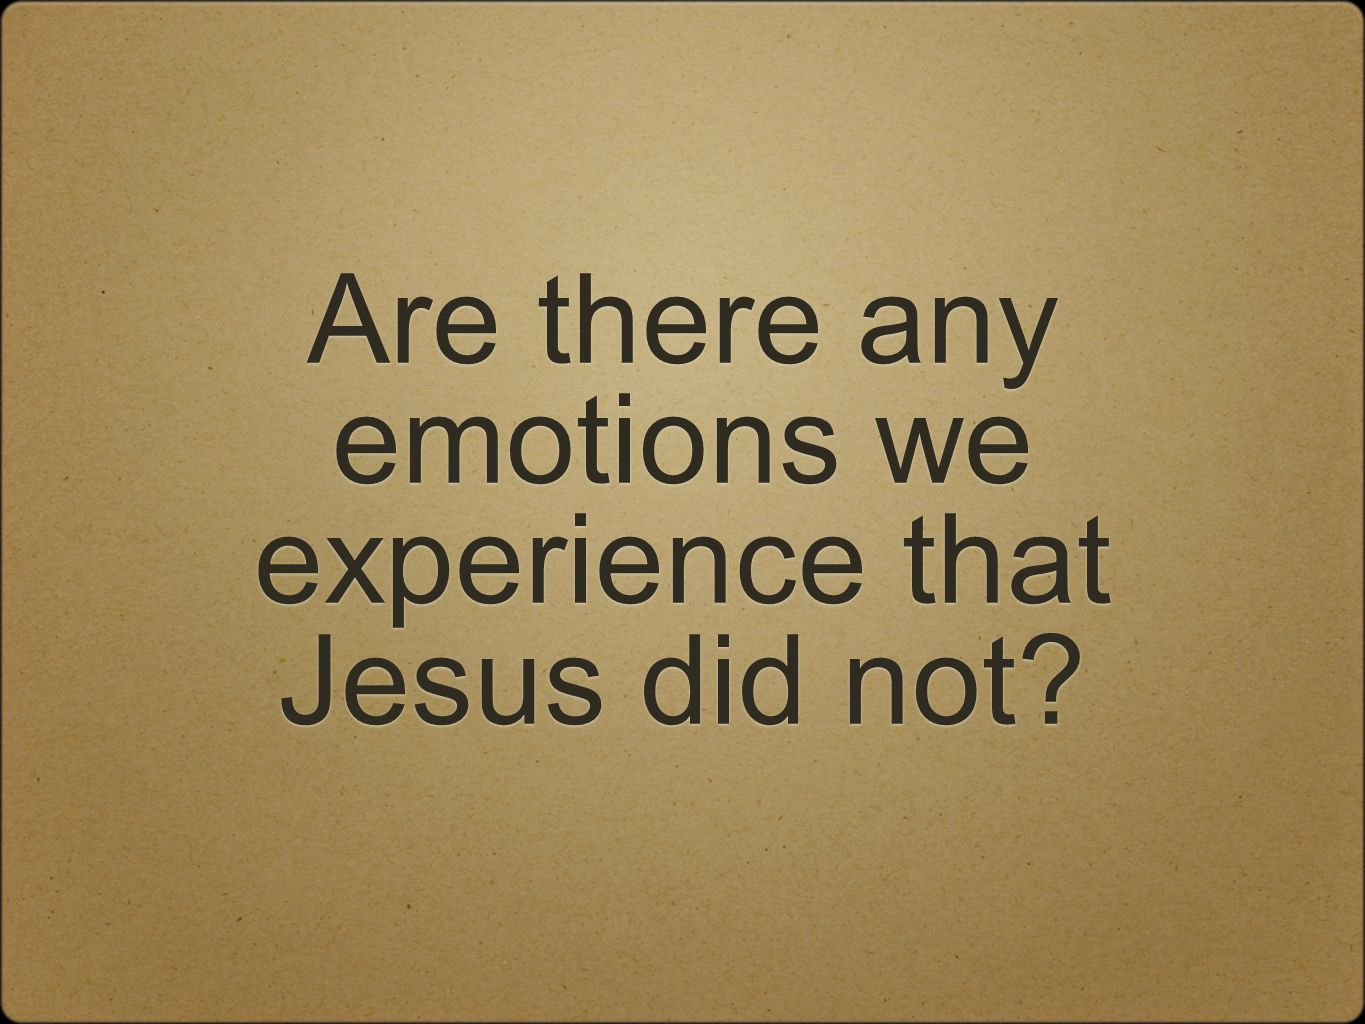 Are there any emotions we experience that Jesus did not